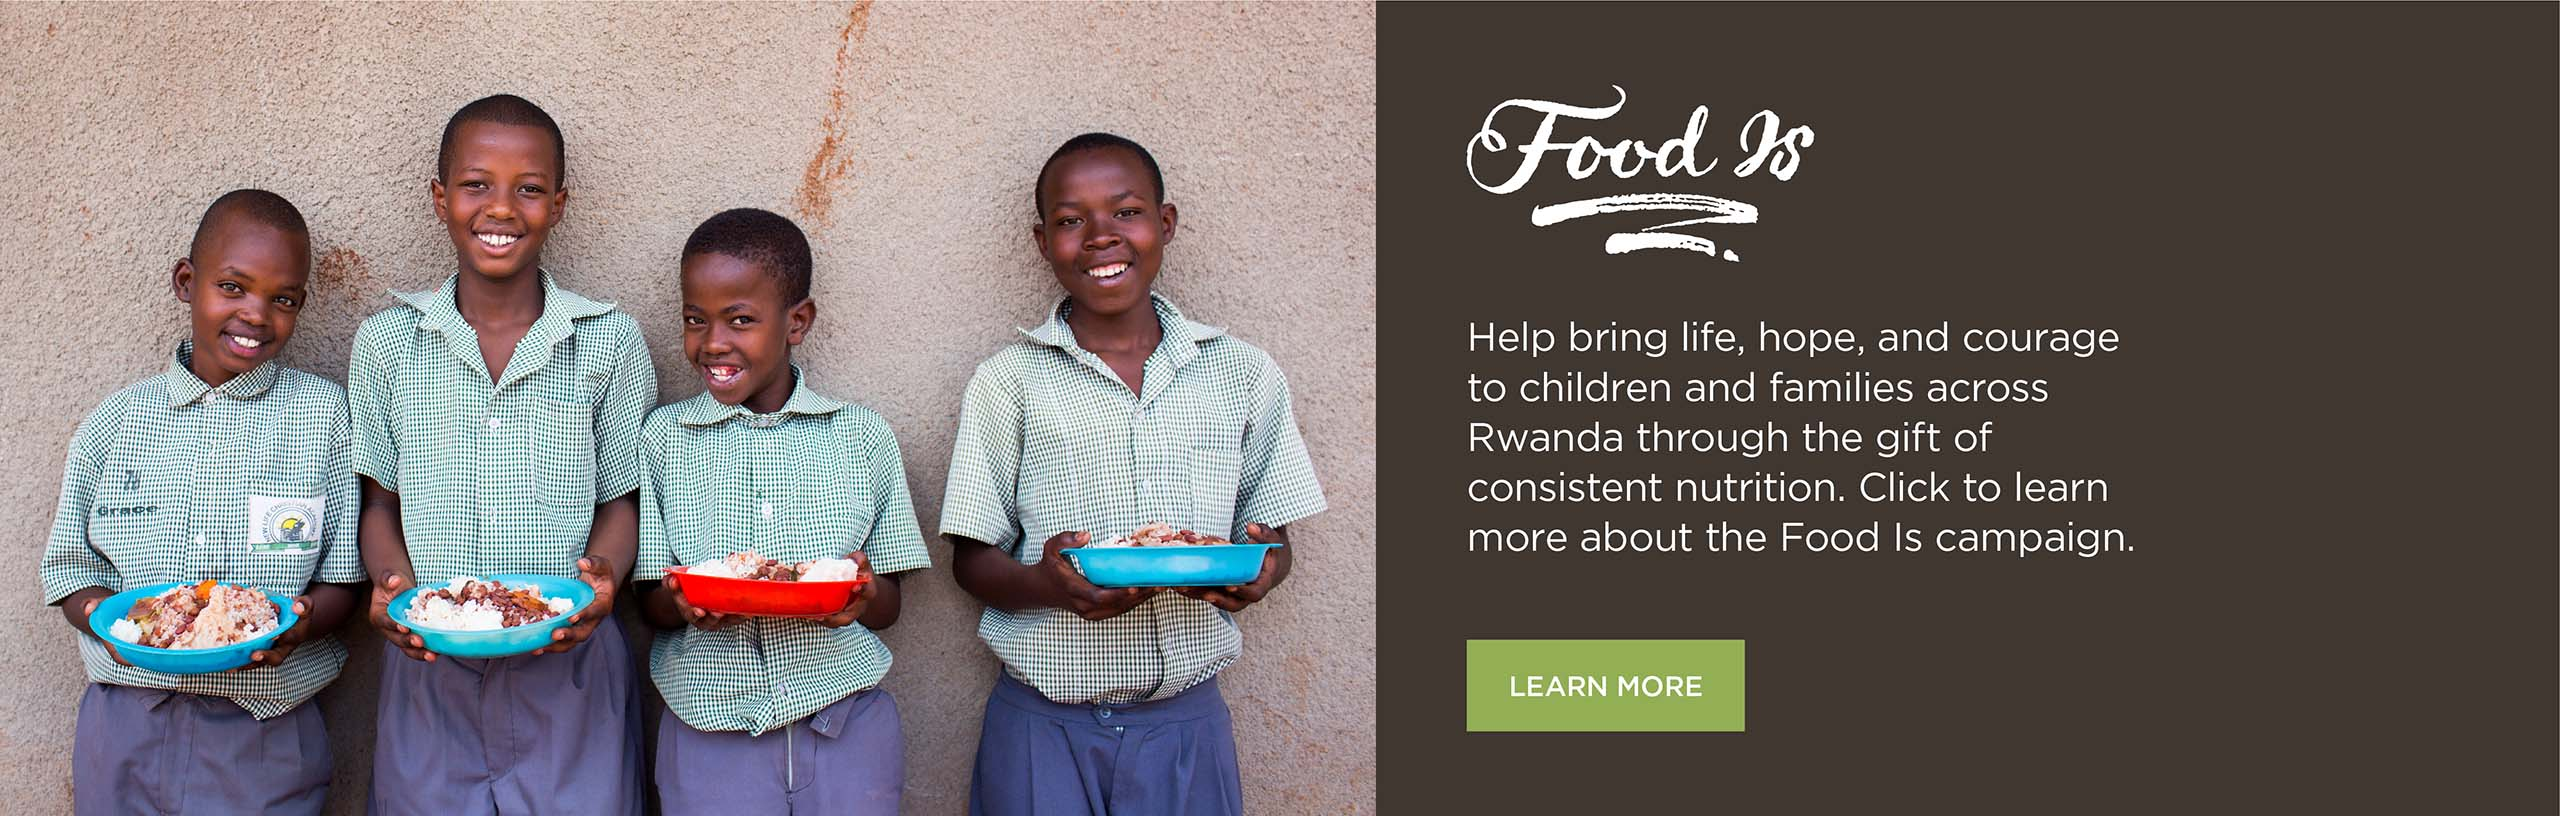 Food Is Rwanda - Bring Hope and Nutrition to Students